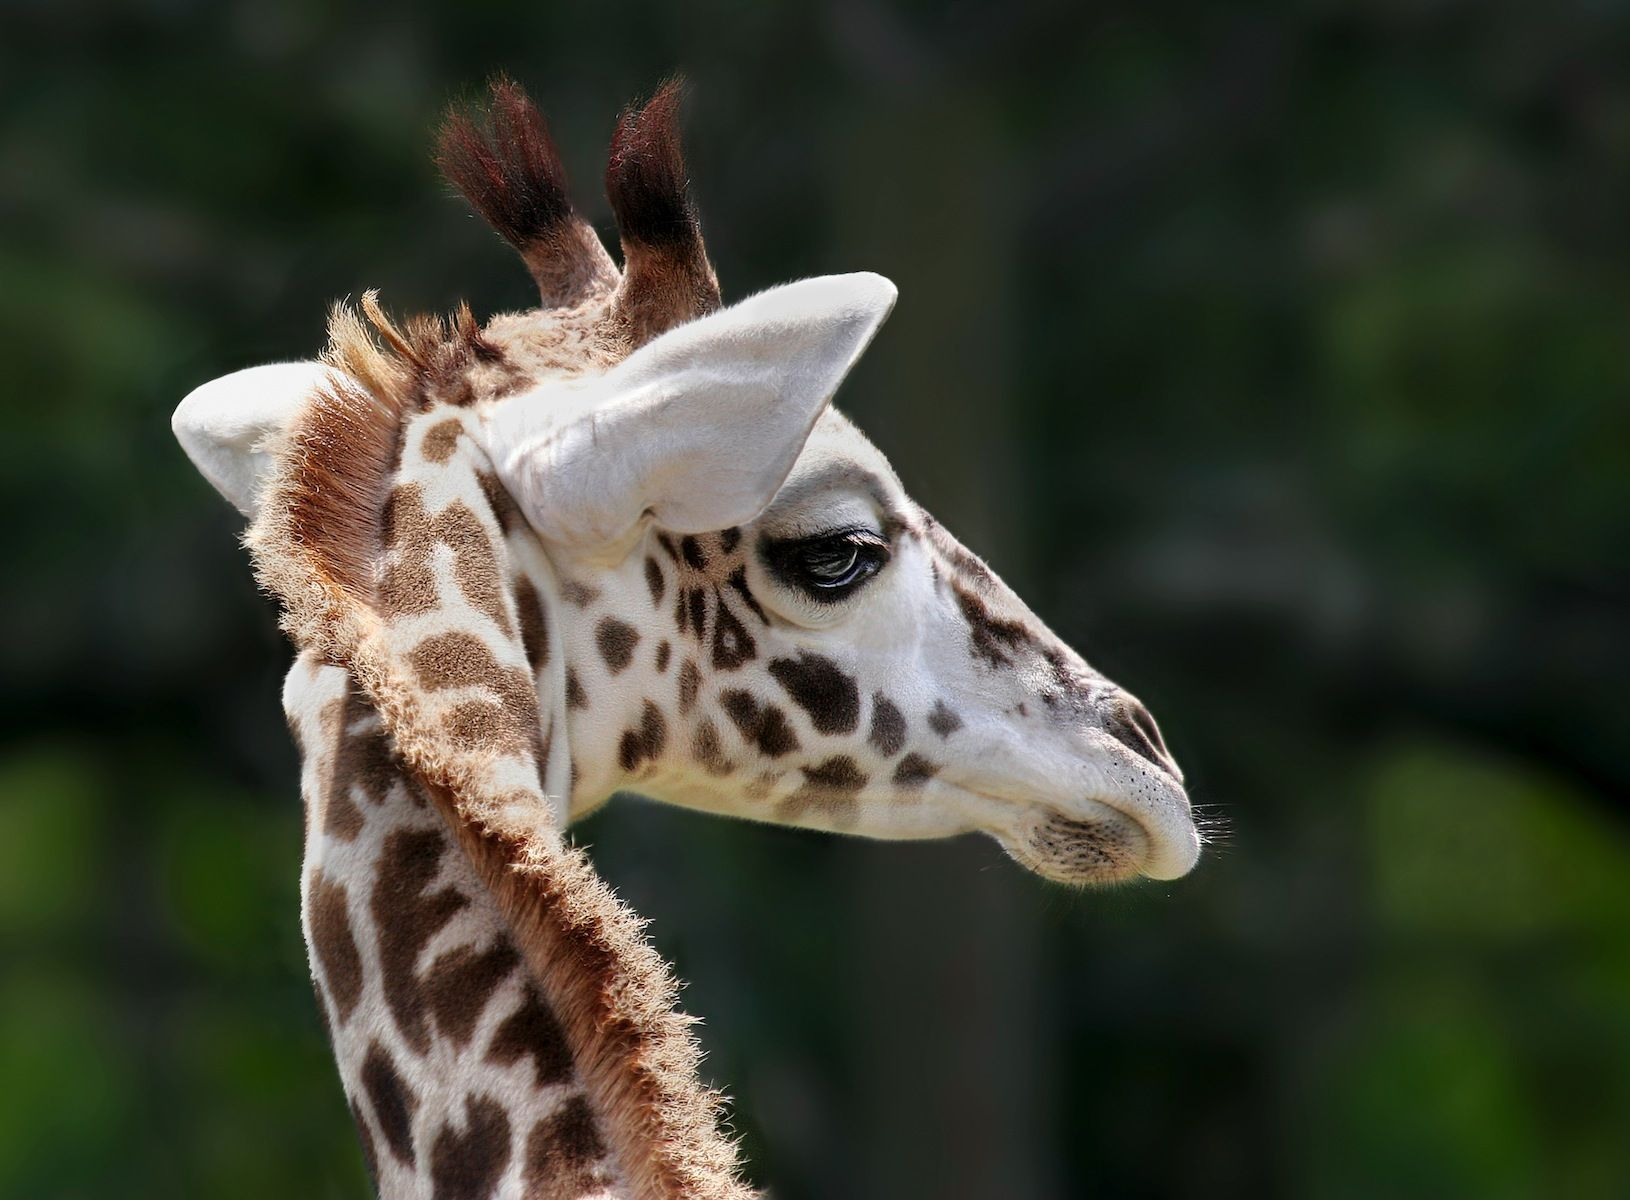 Free Download High Resolution Baby Giraffe Face HD Wallpaper For IPad IPhone Mobile Device And Desktop